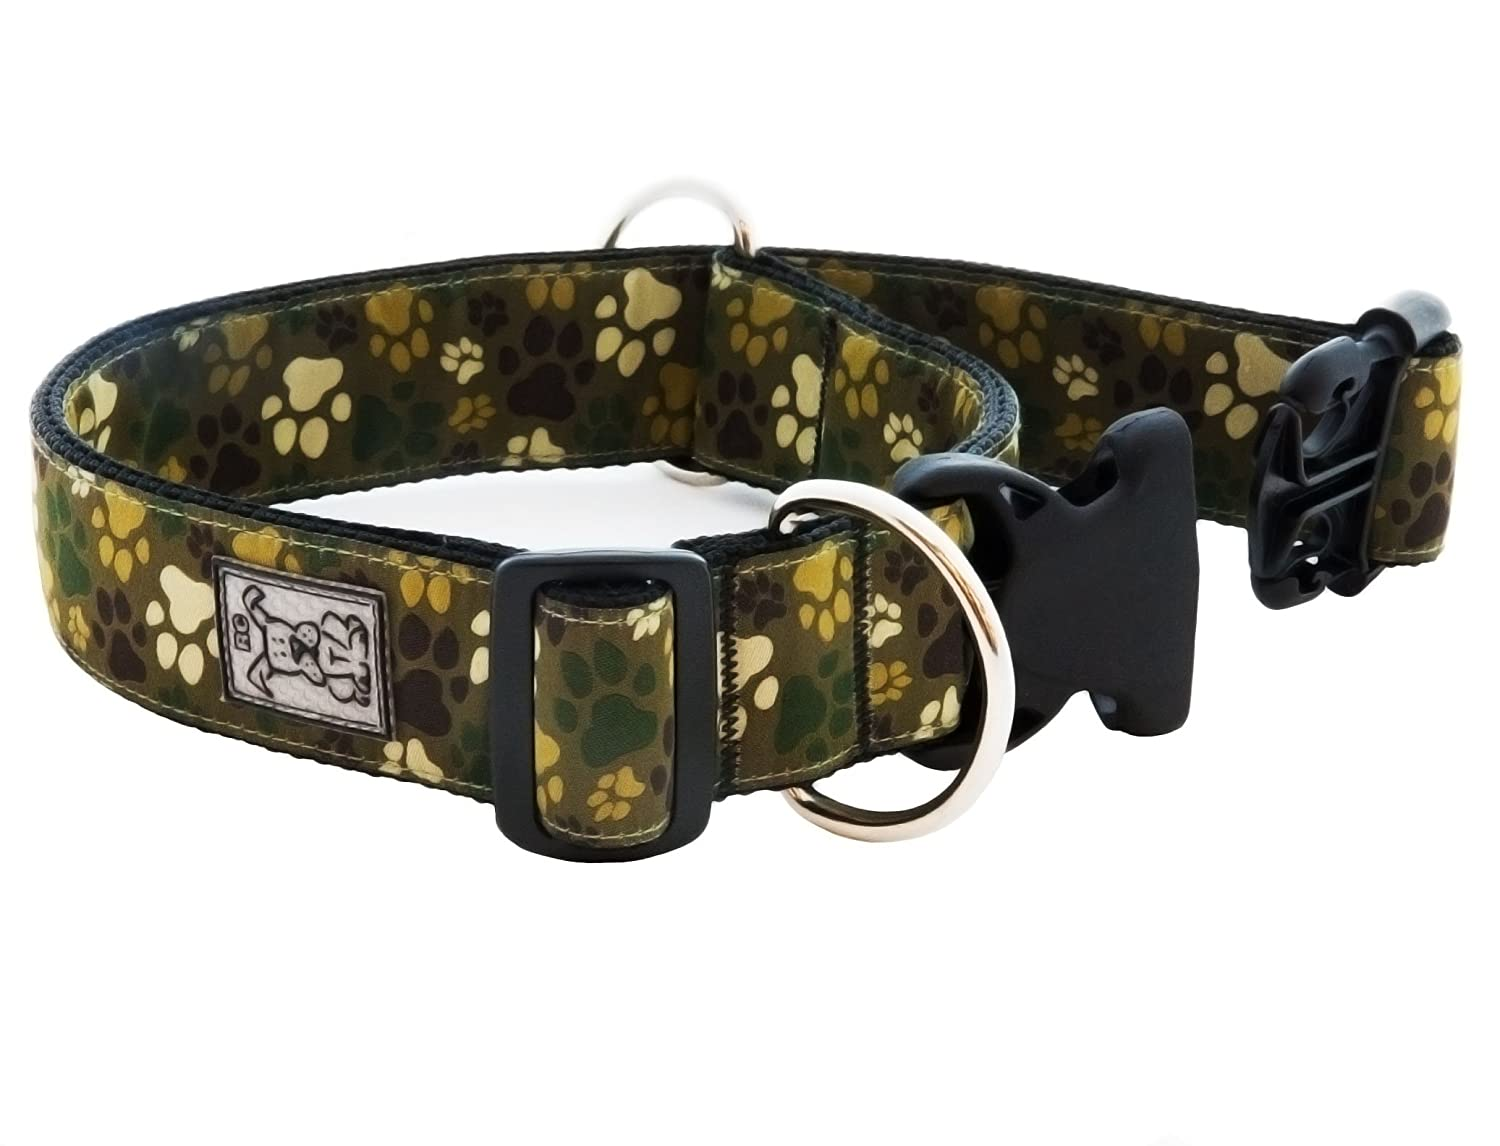 RC Pet Products 1-1 2-Inch Dog Safety Clip Collar, X-Large, Pitter Patter Camo